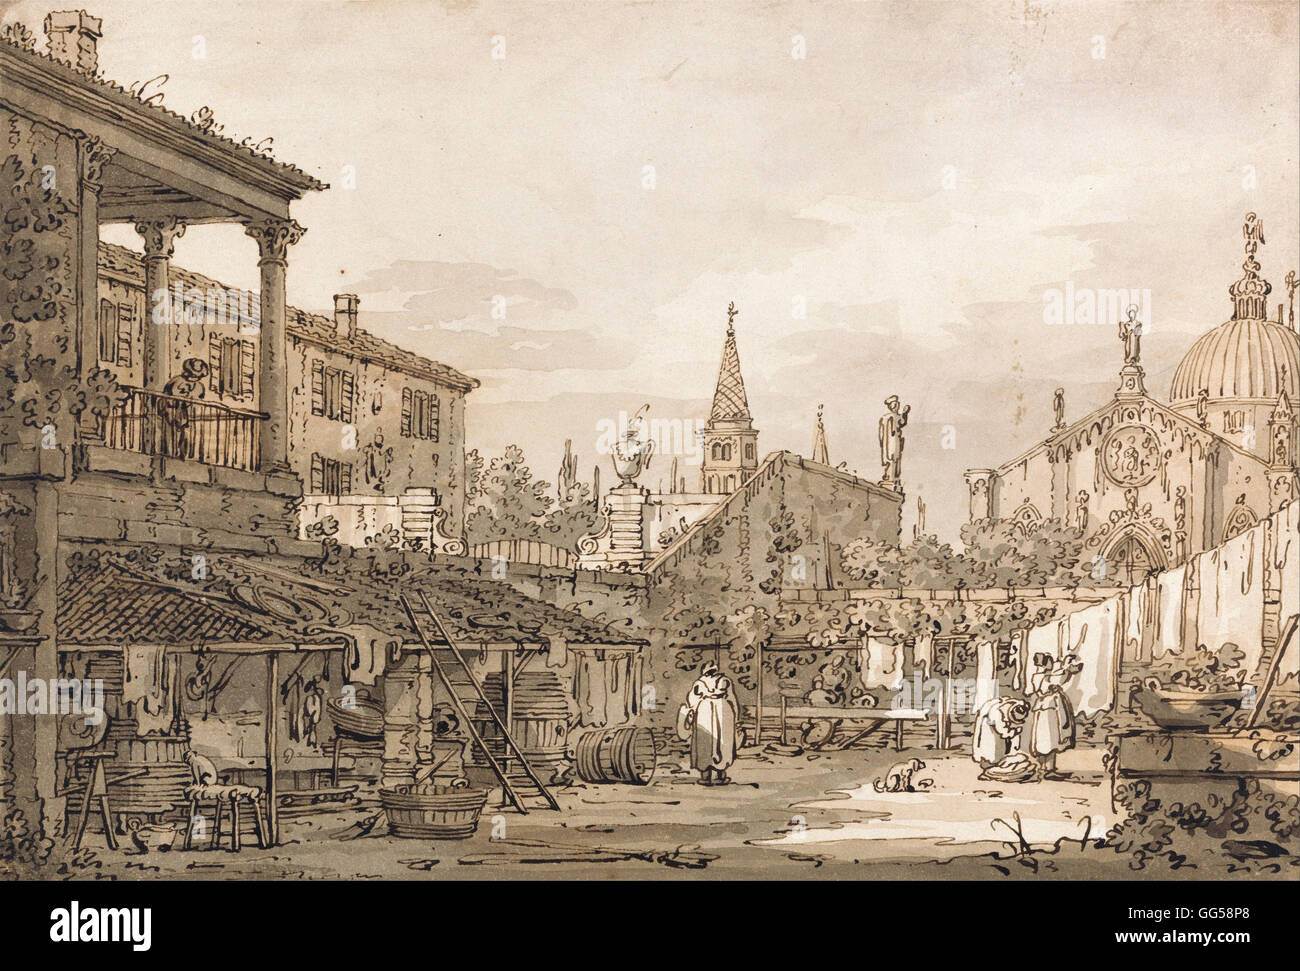 Canaletto - Capriccio of a Venetian Courtyard - Stock Image